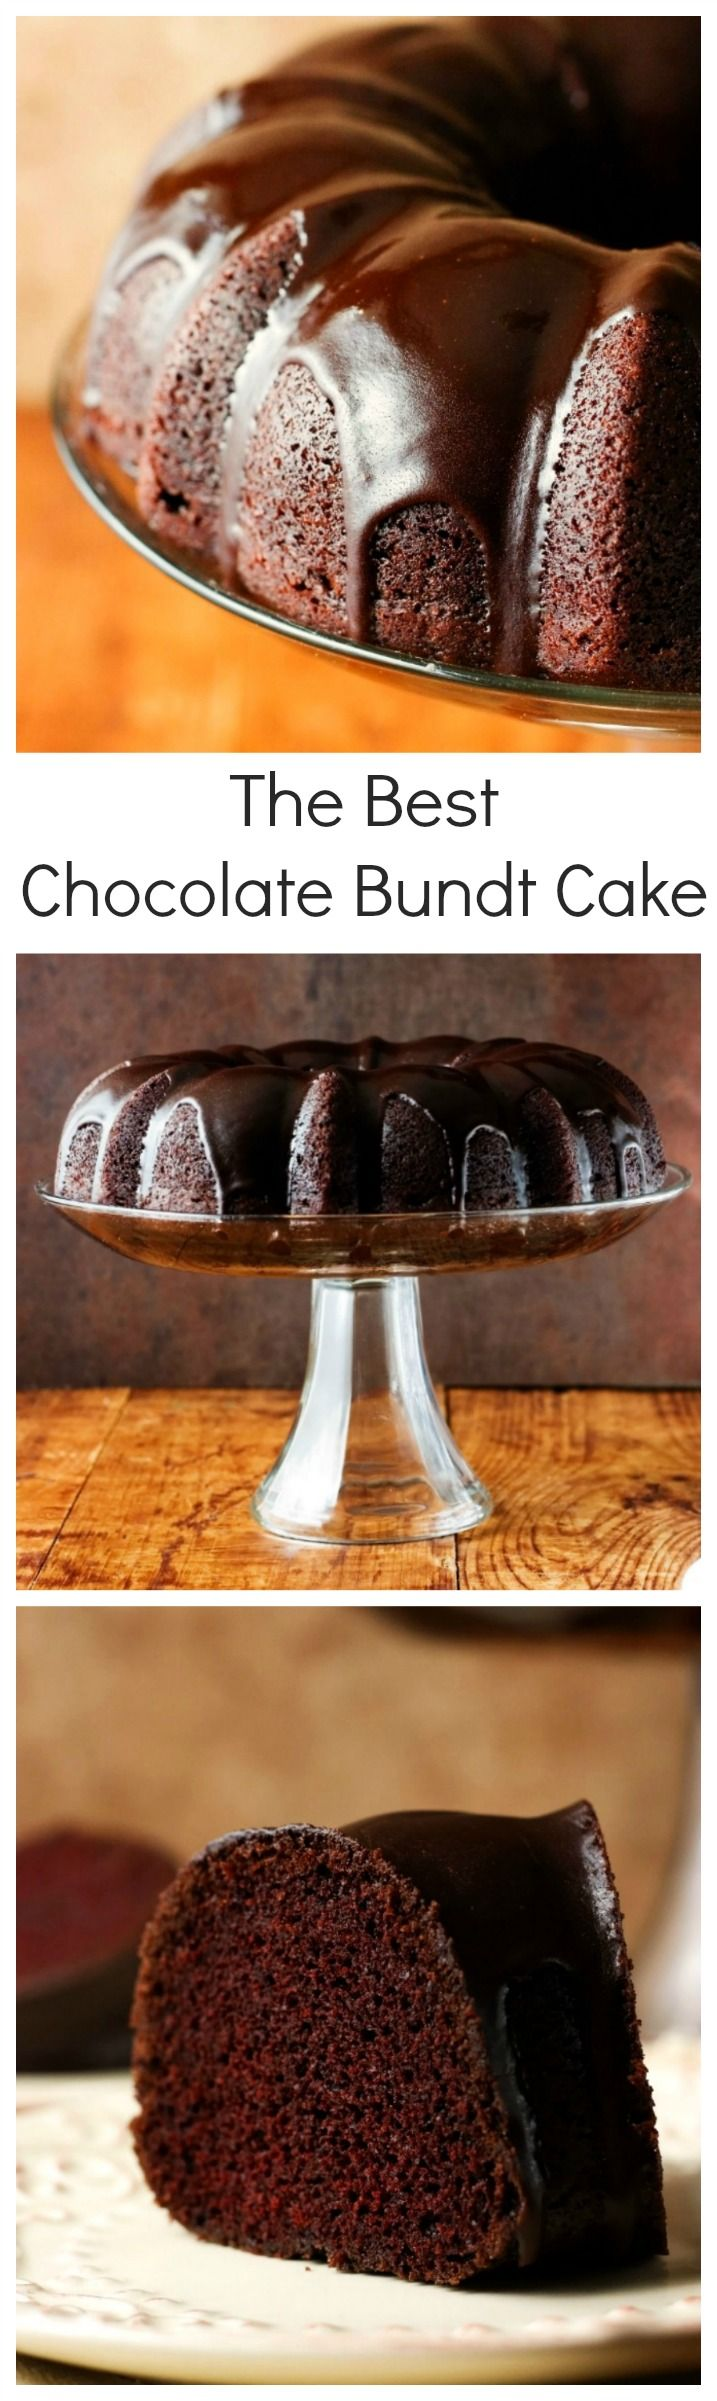 The Best Chocolate Bundt Cake - absolutely perfect chocolate bundt cake with an easy chocolate glaze! You will love this one-bowl recipe that does not require eggs for the batter and mixer to make it!